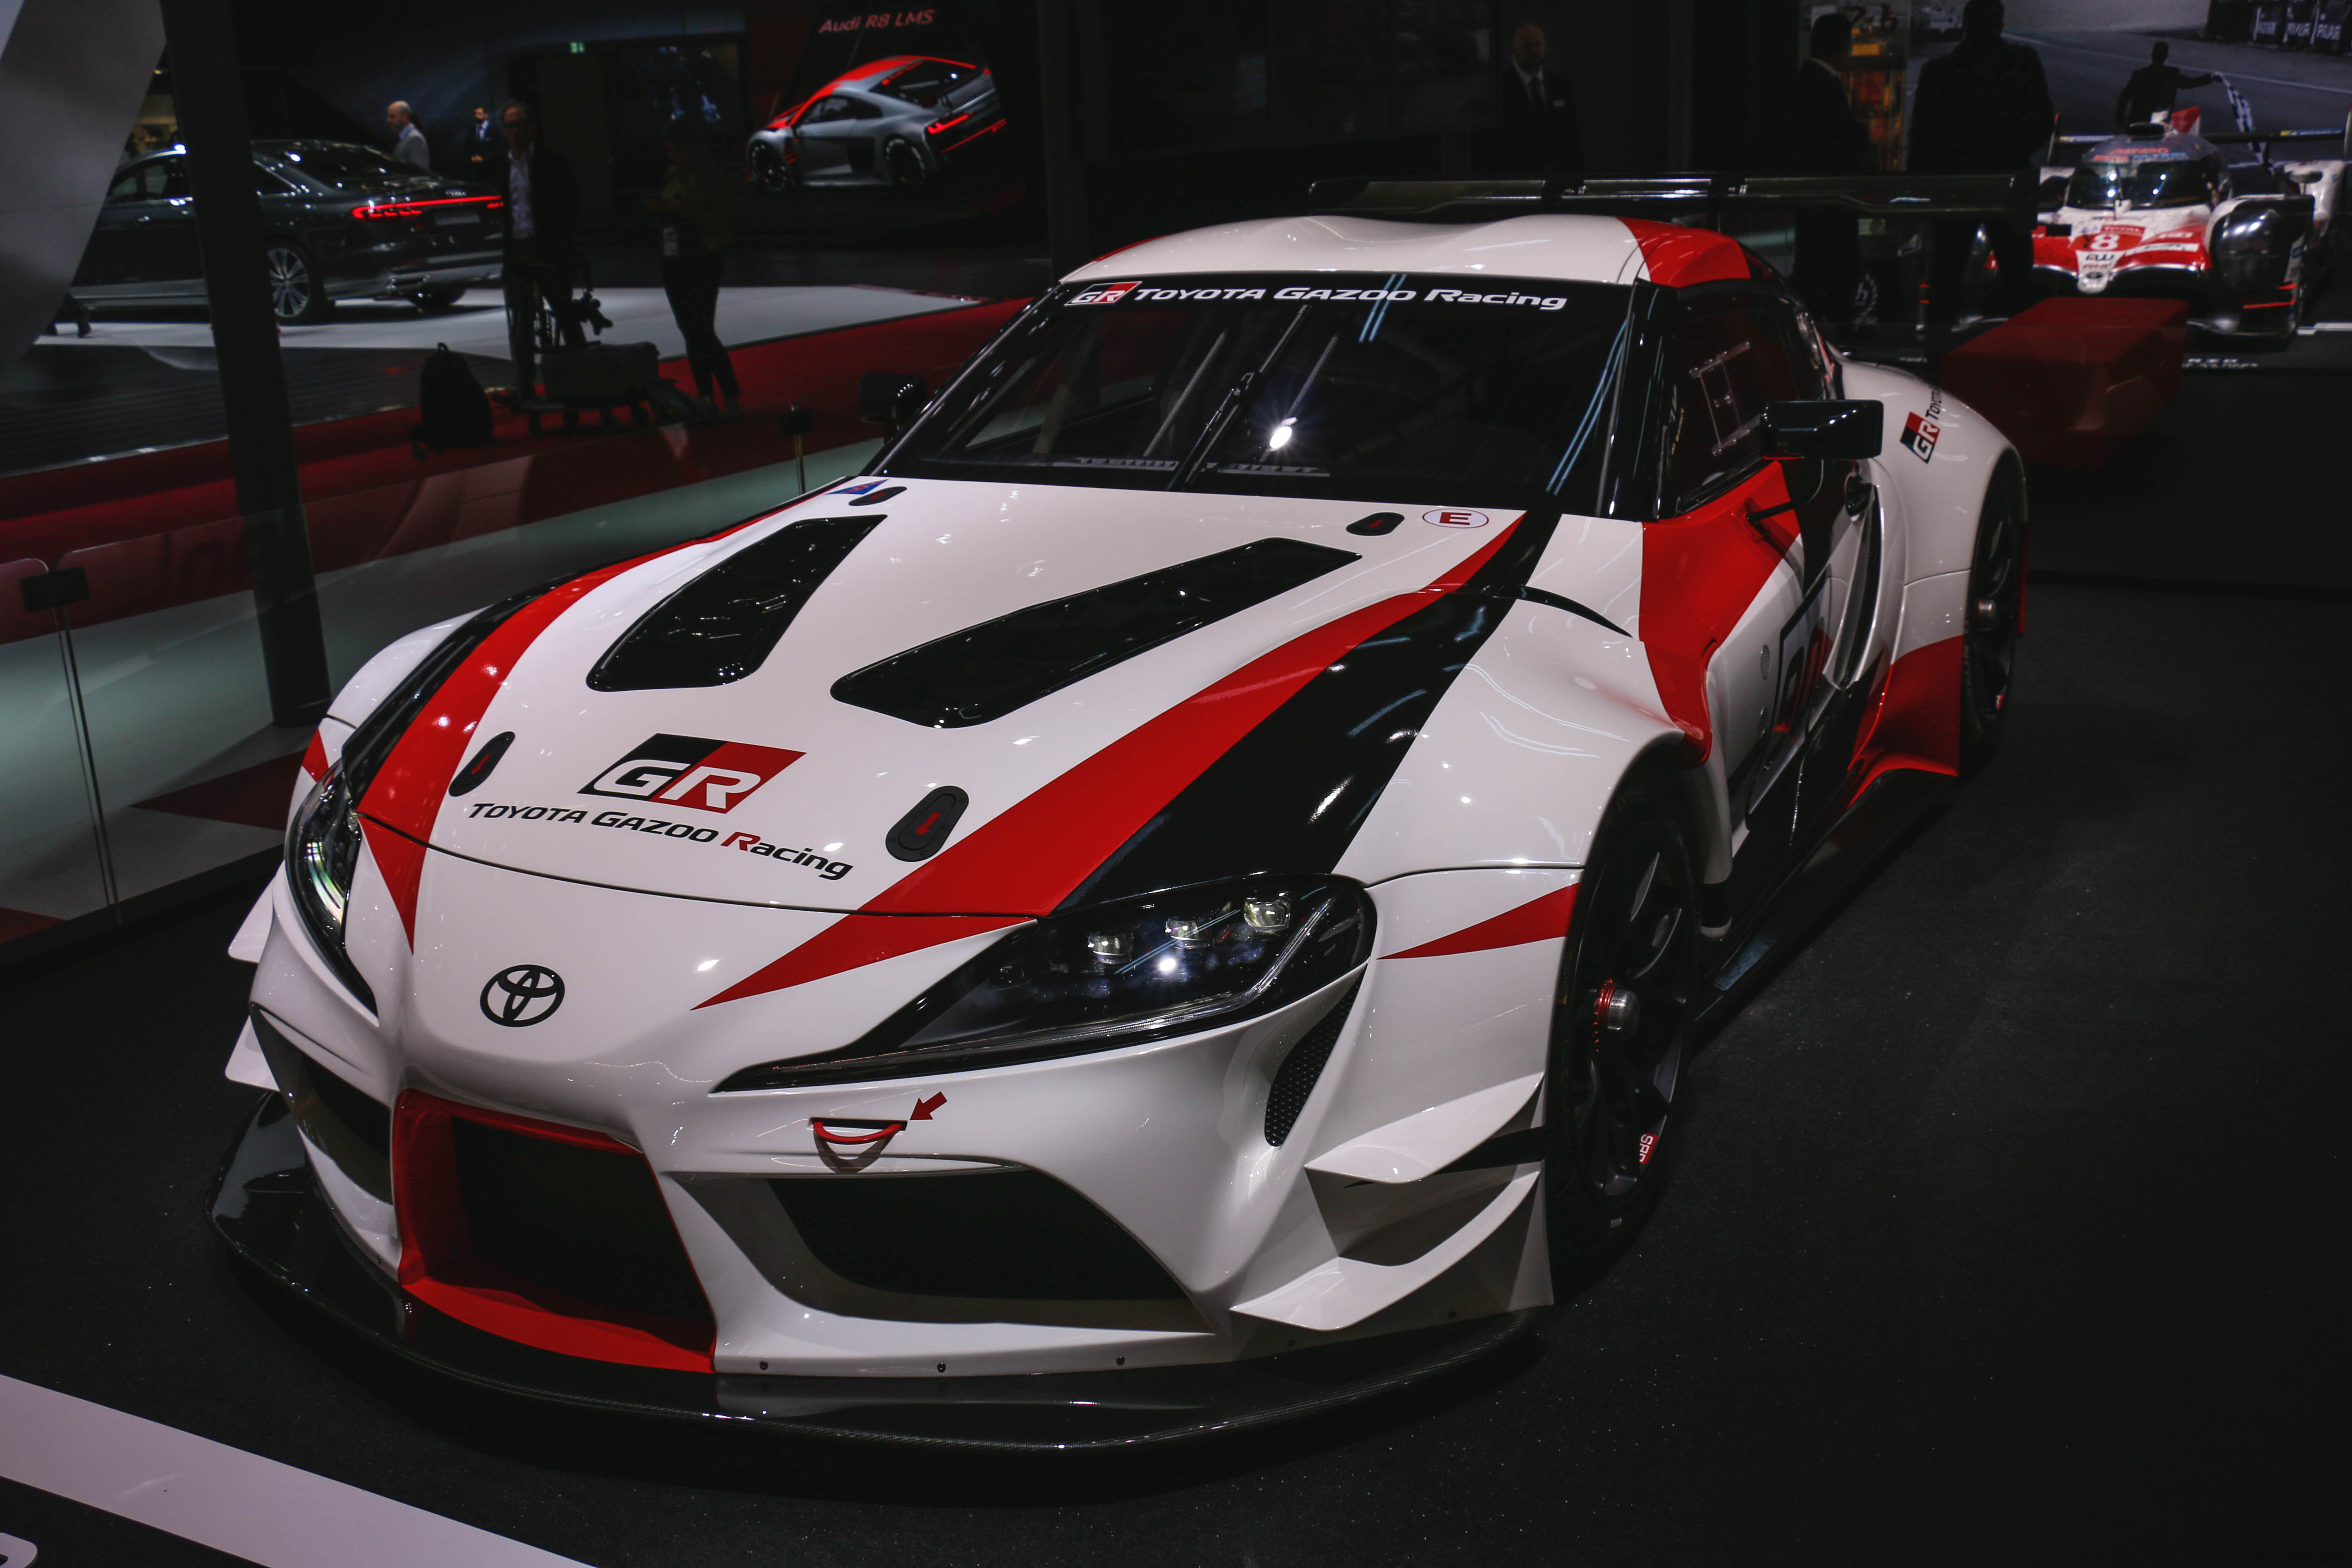 Toyota GR Supra Racing Concept - Paris Motor Show - 2018 - Mondial Auto - photo by Arnaud Demasier RS Photographie